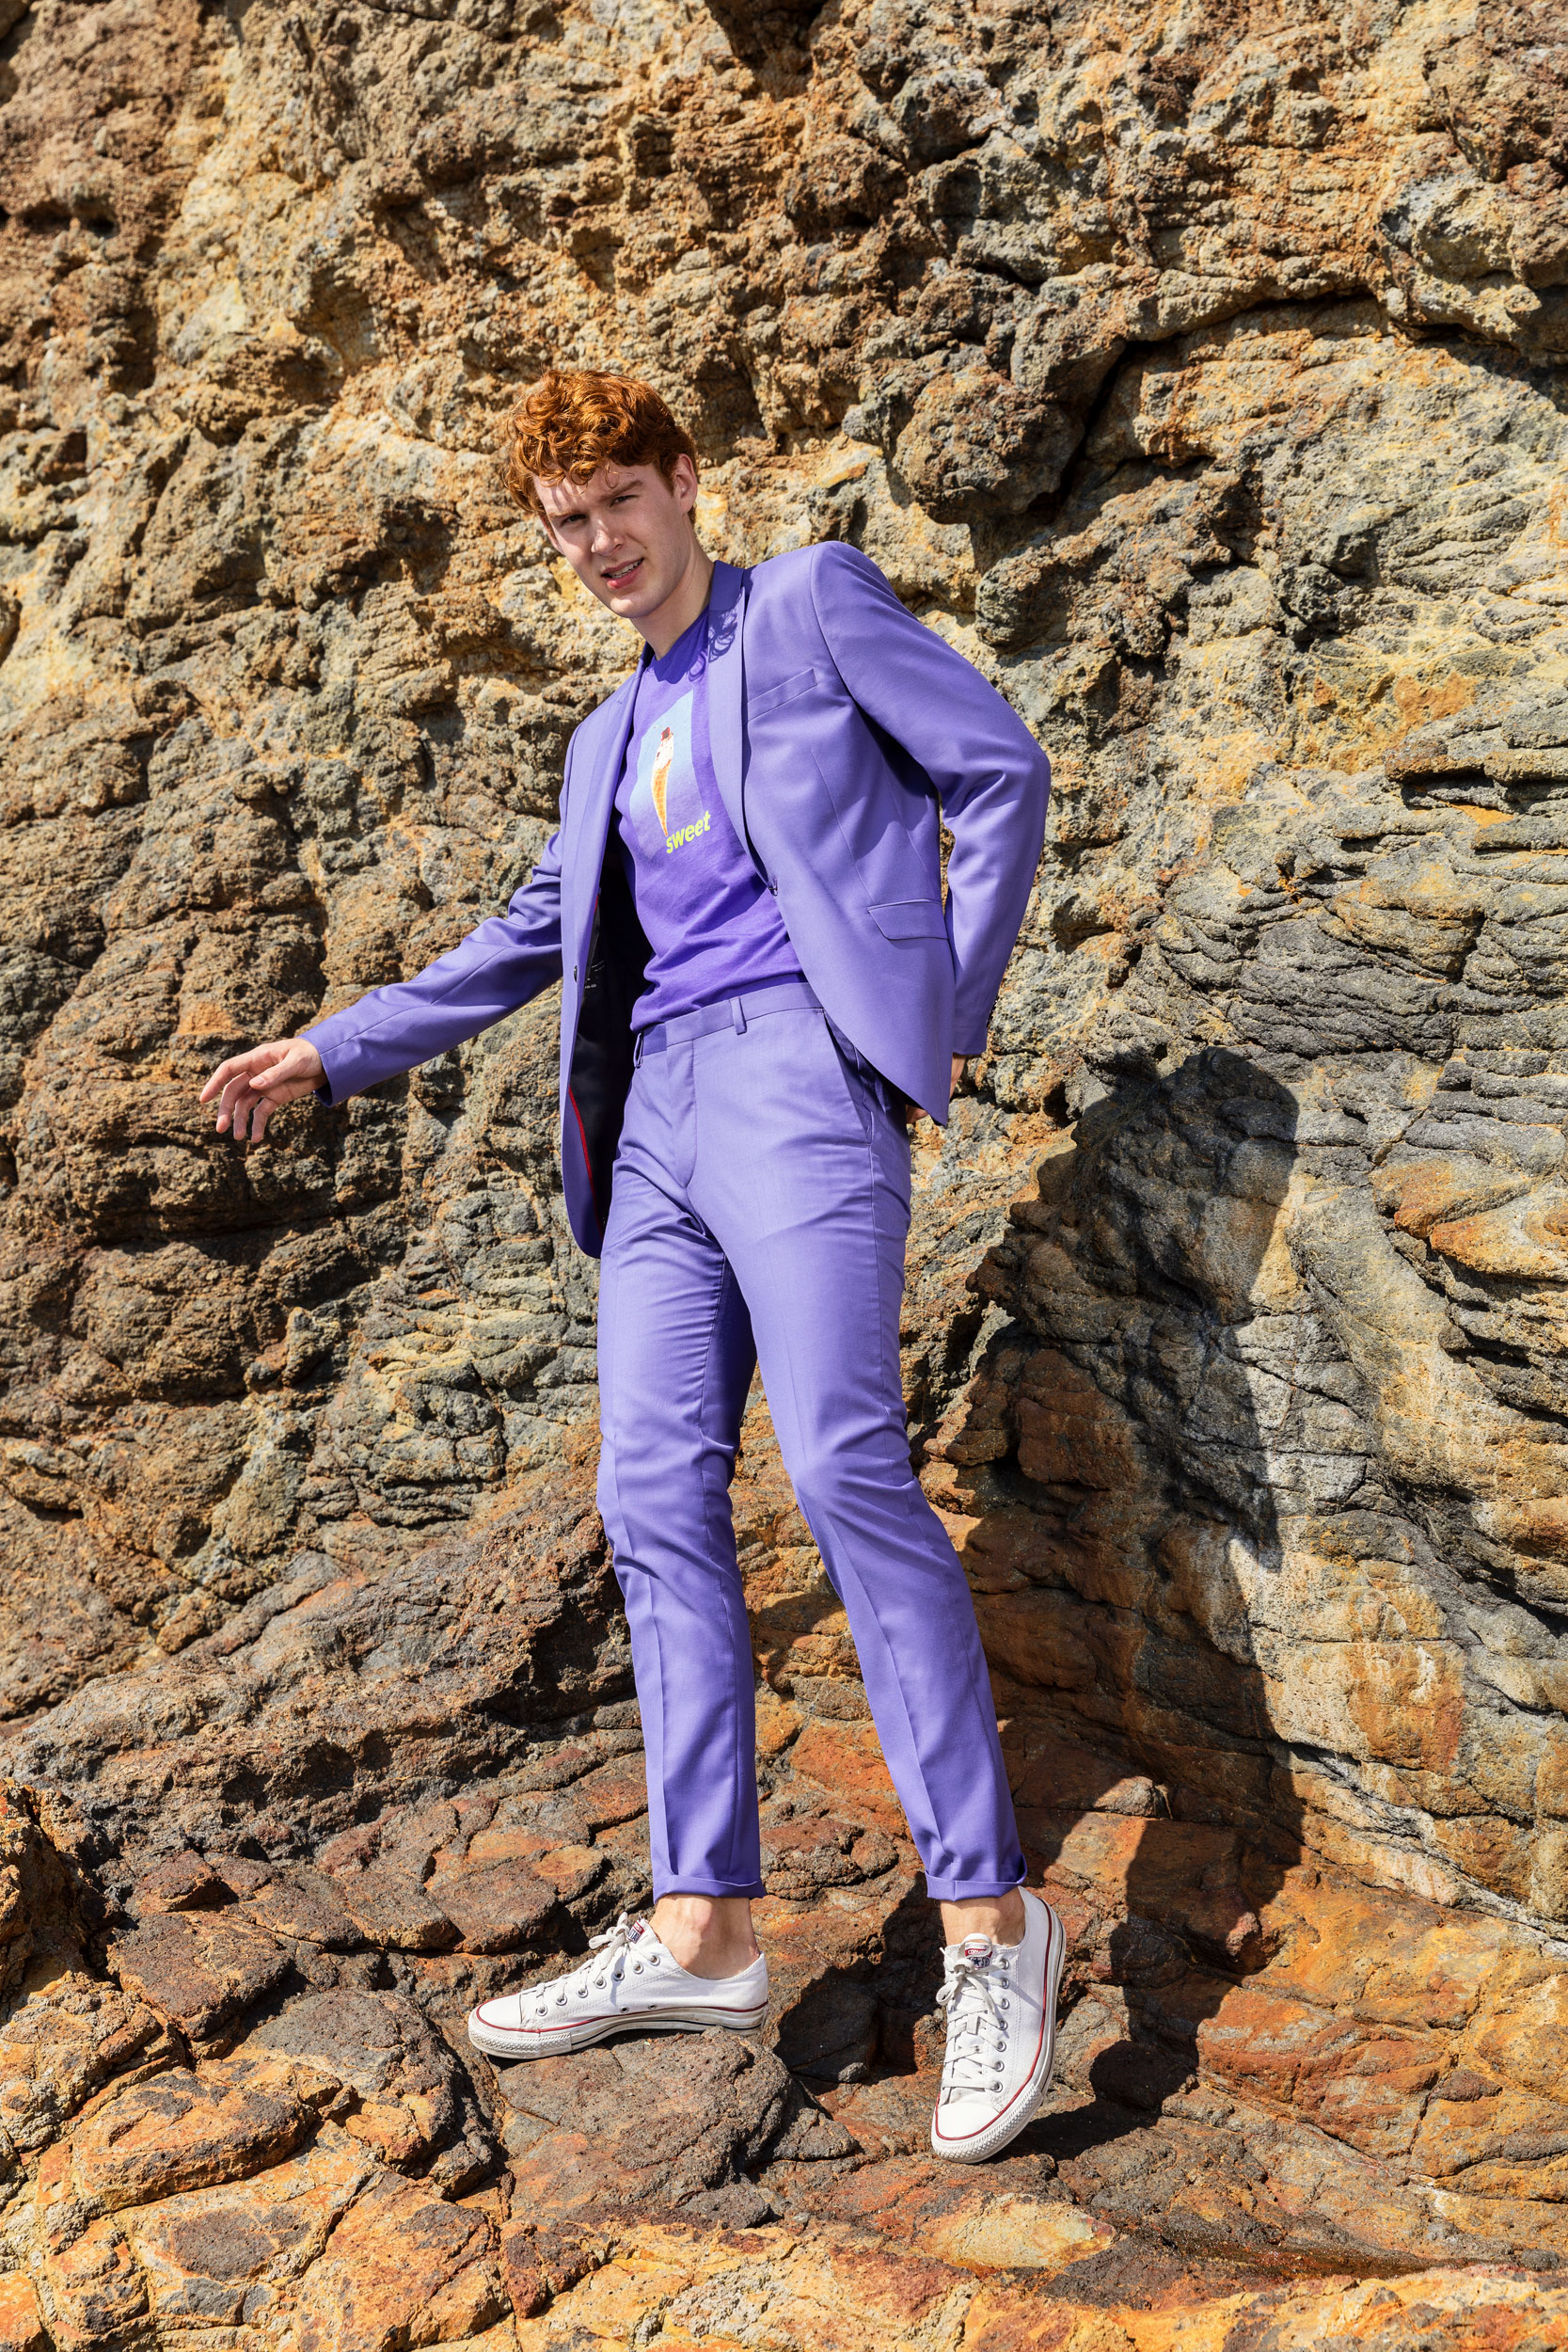 Millennial wearing a purple suit standing against a cliff